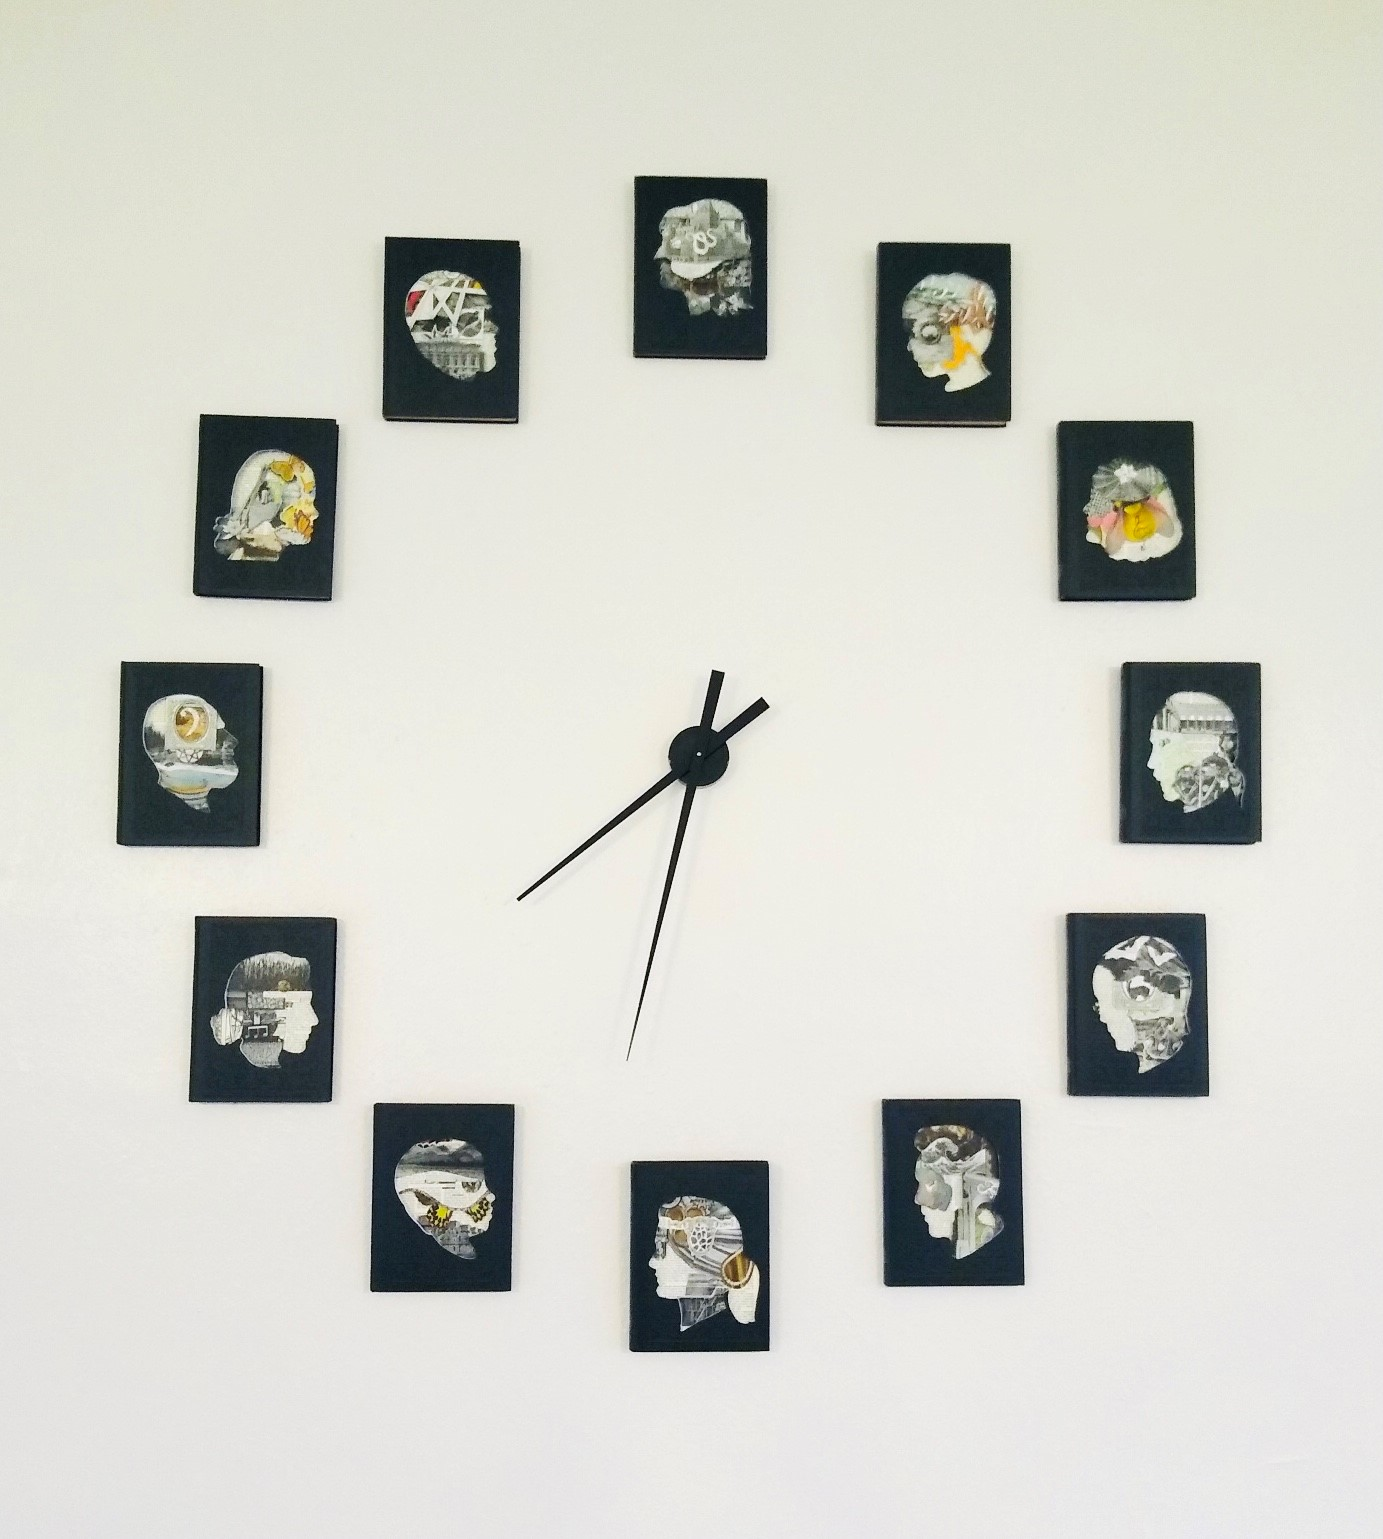 A wall clock made up of various images.